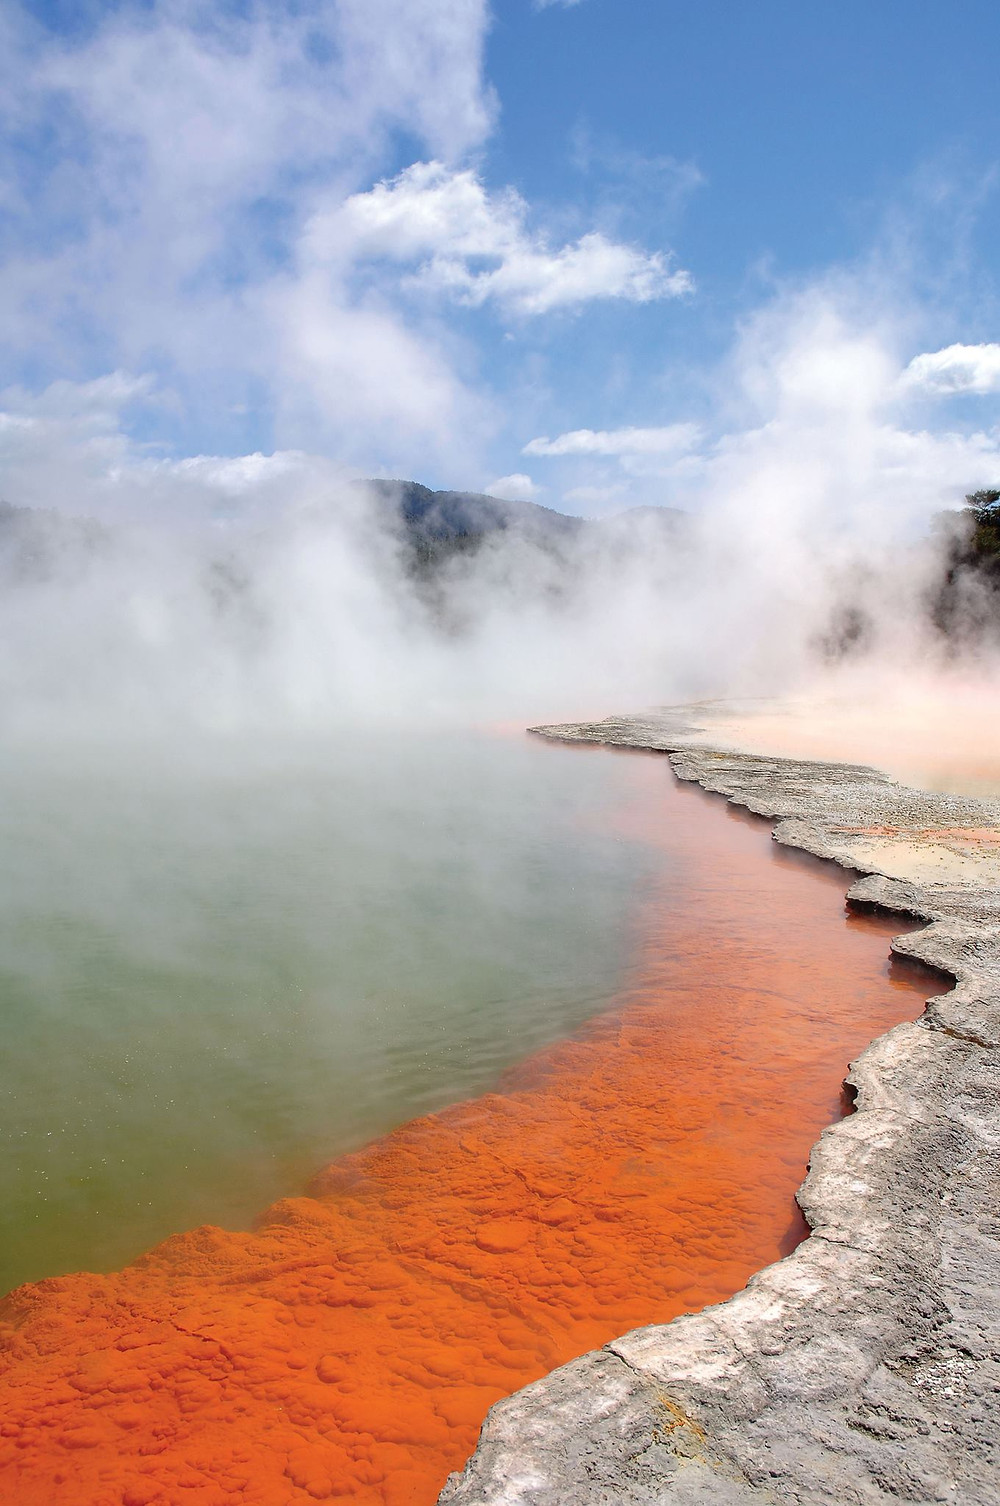 The unique Champagne Pool in Wai-o-Tapu steams with vivid oranges and greens